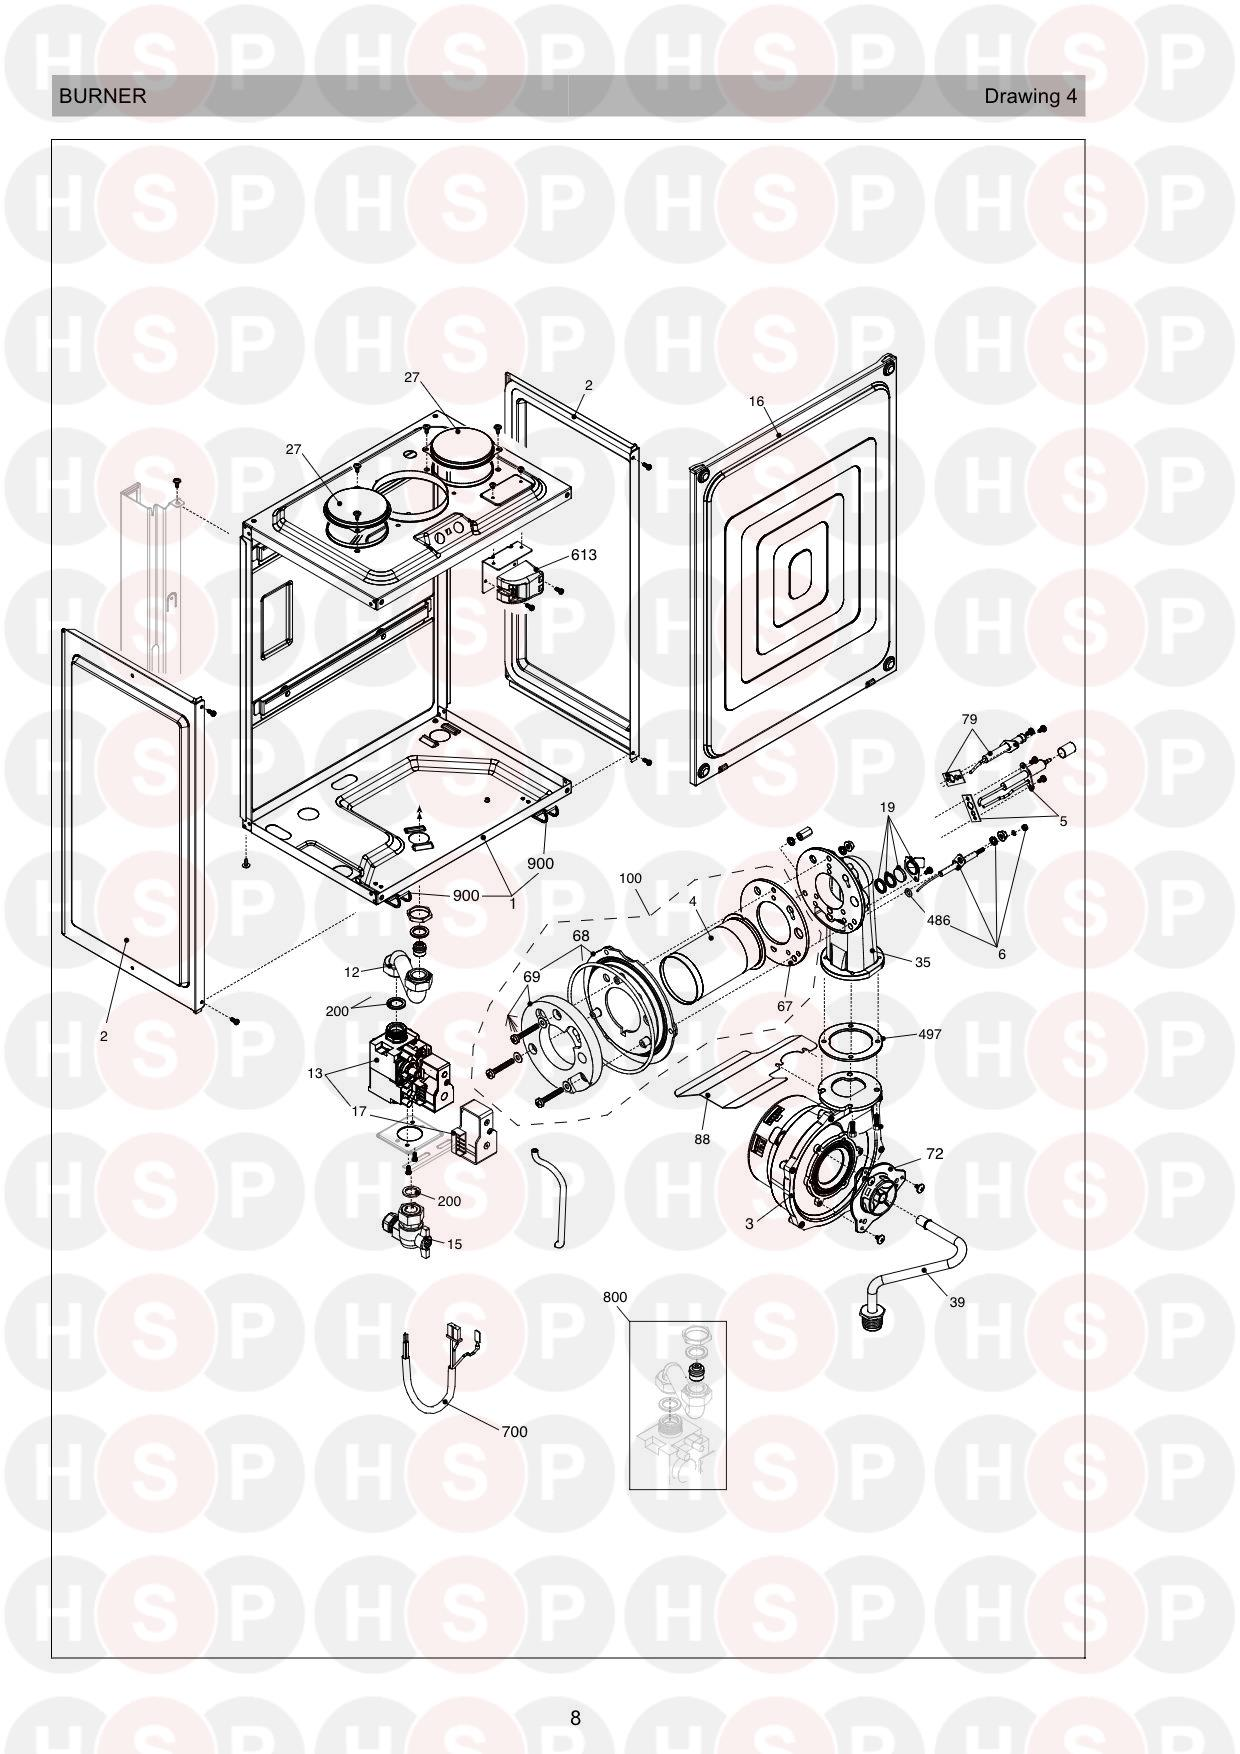 Burner diagram for Vokera Mynute 20 VHE Rev 15 (02/2017)